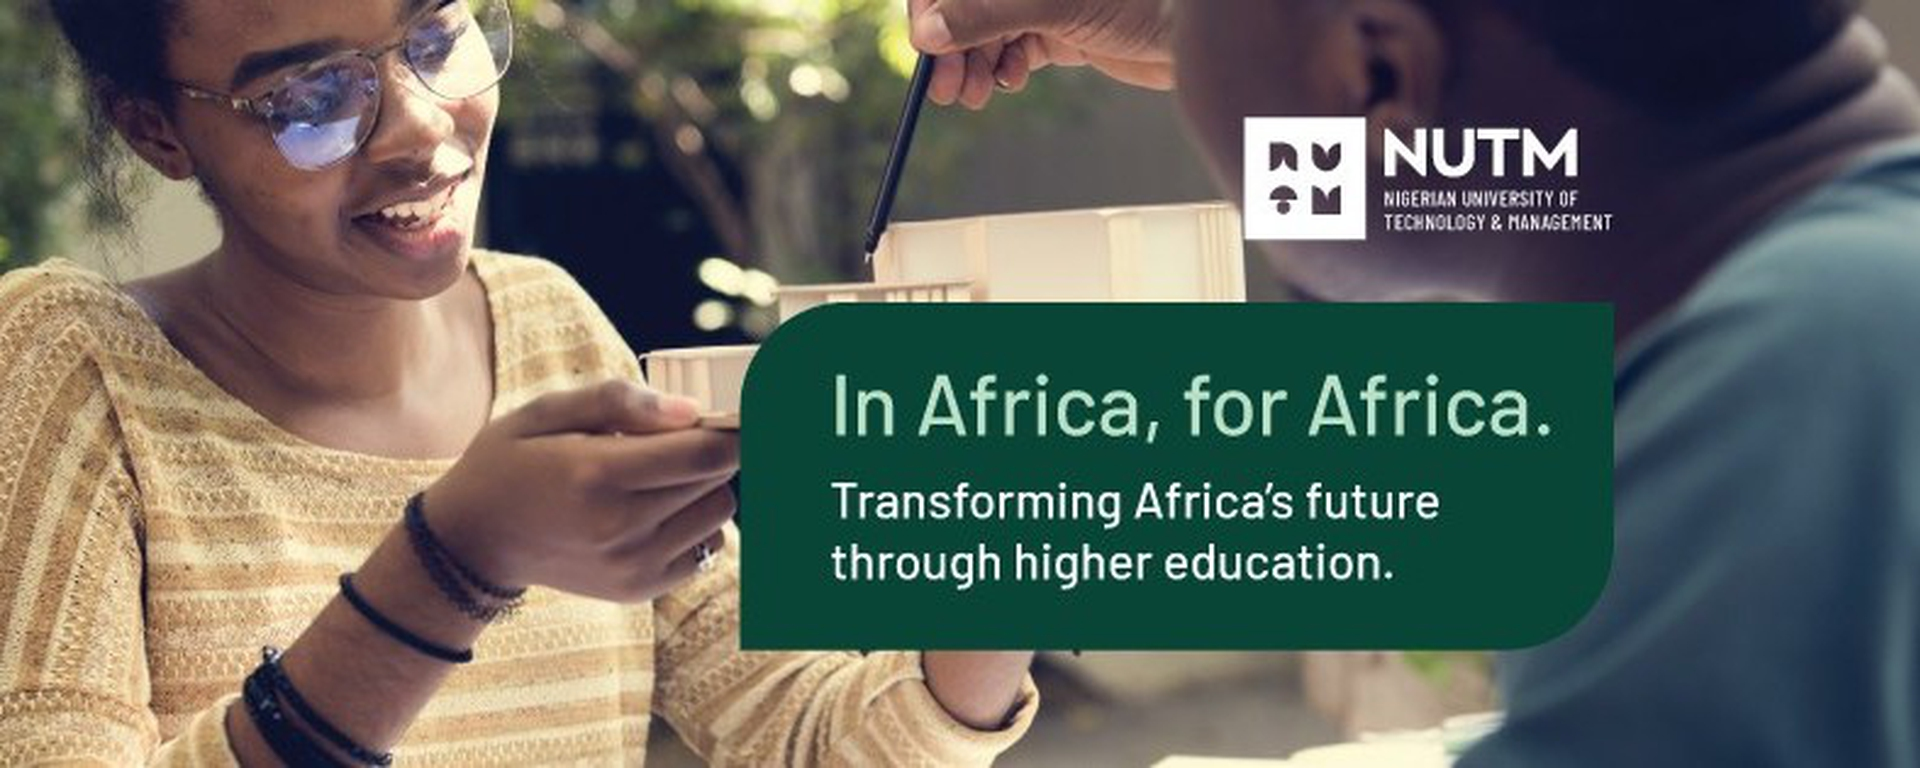 Nigerian University of Technology and Management (NUTM) - NUTM Scholars Program Movemeback African initiative cover image